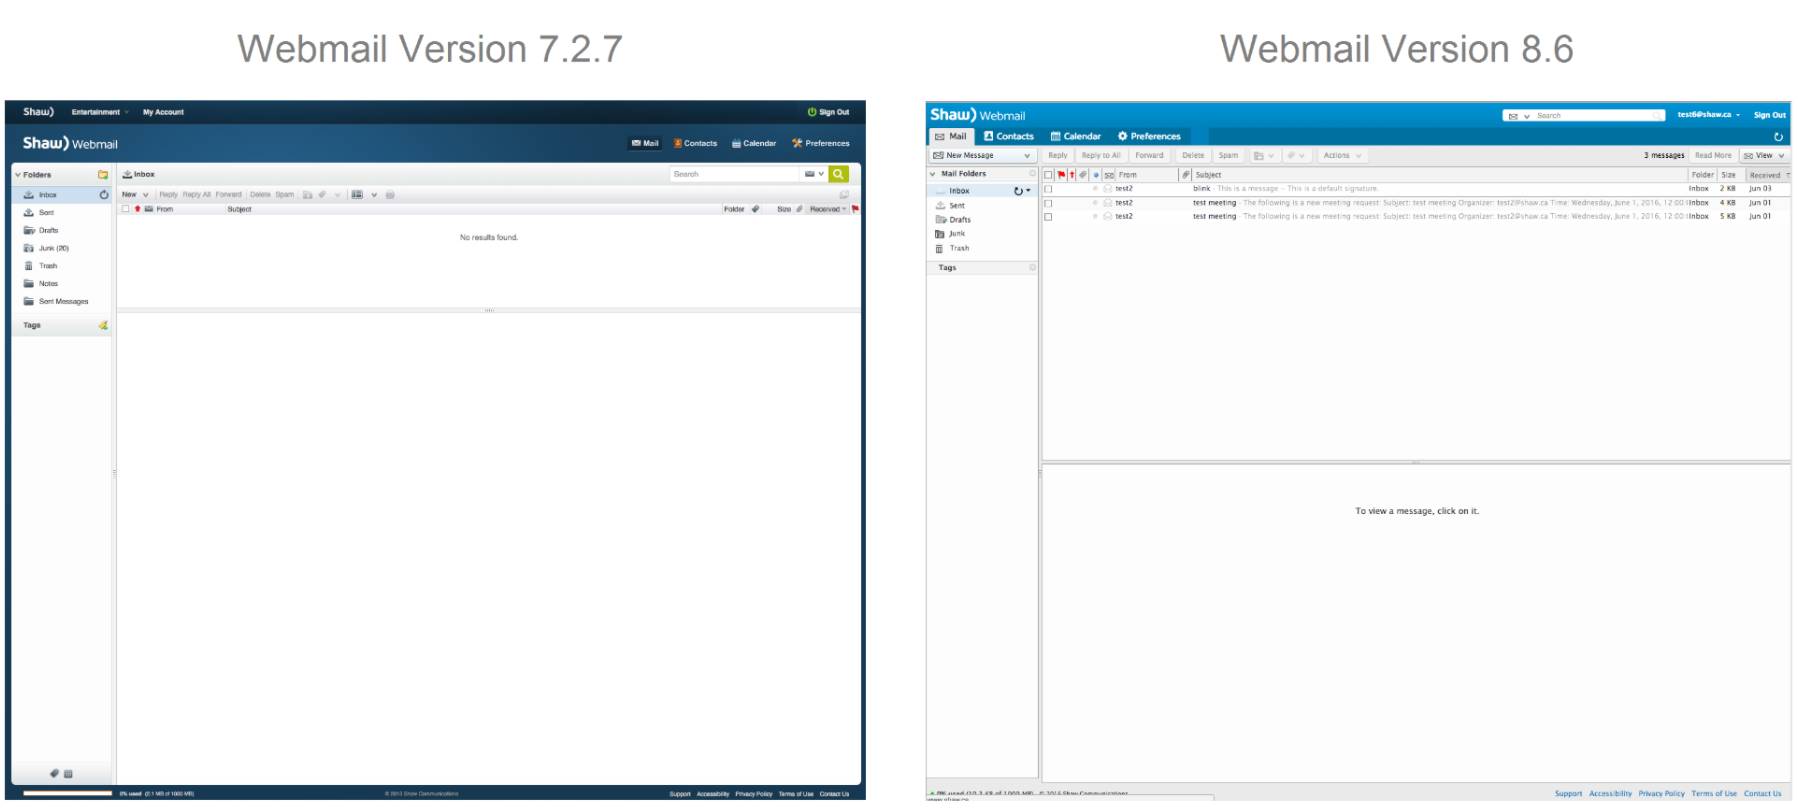 Webmail User Interface Updates